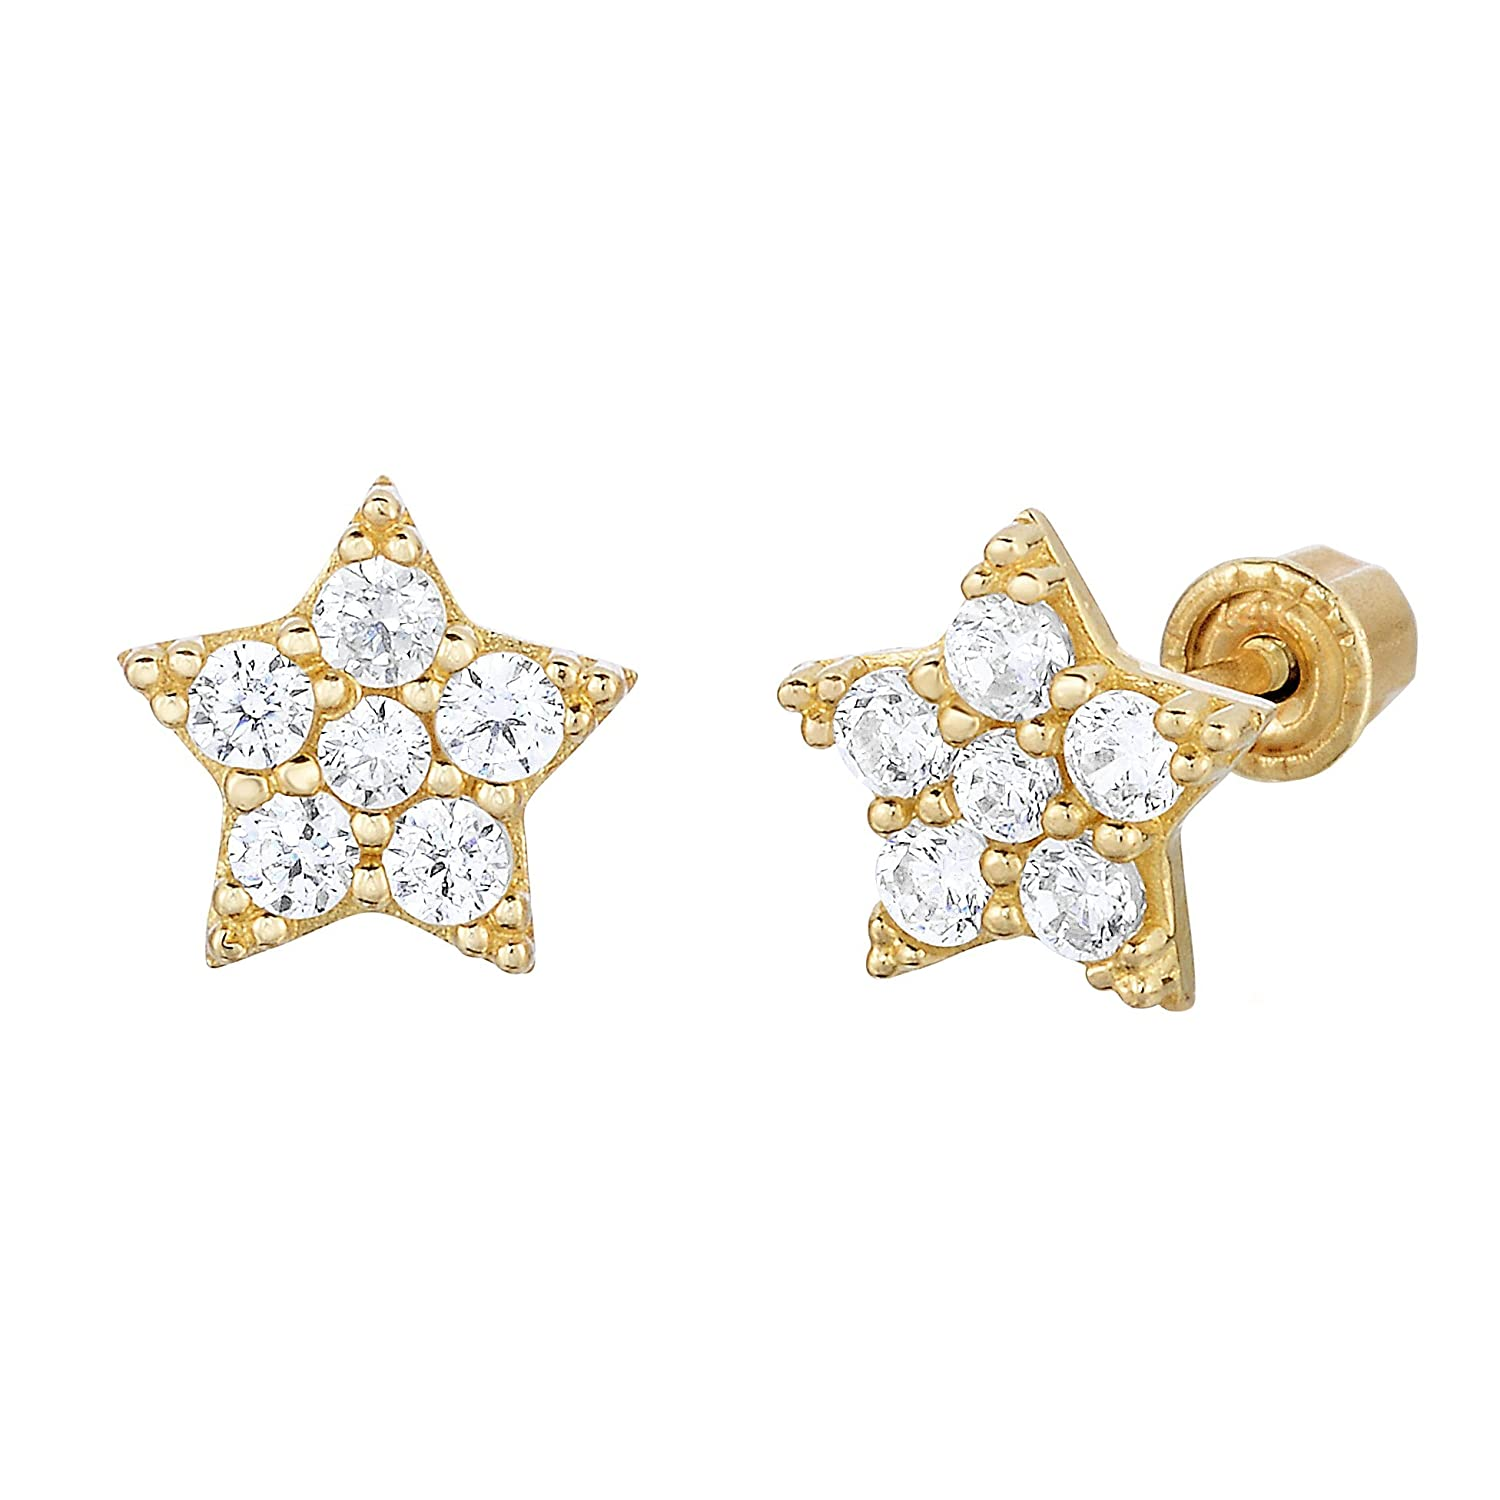 14k Gold Small Star shaped CZ Stud Earrings with Secure Screwbacks NY Gold /& Silver Trading Inc TLE4892GCZ